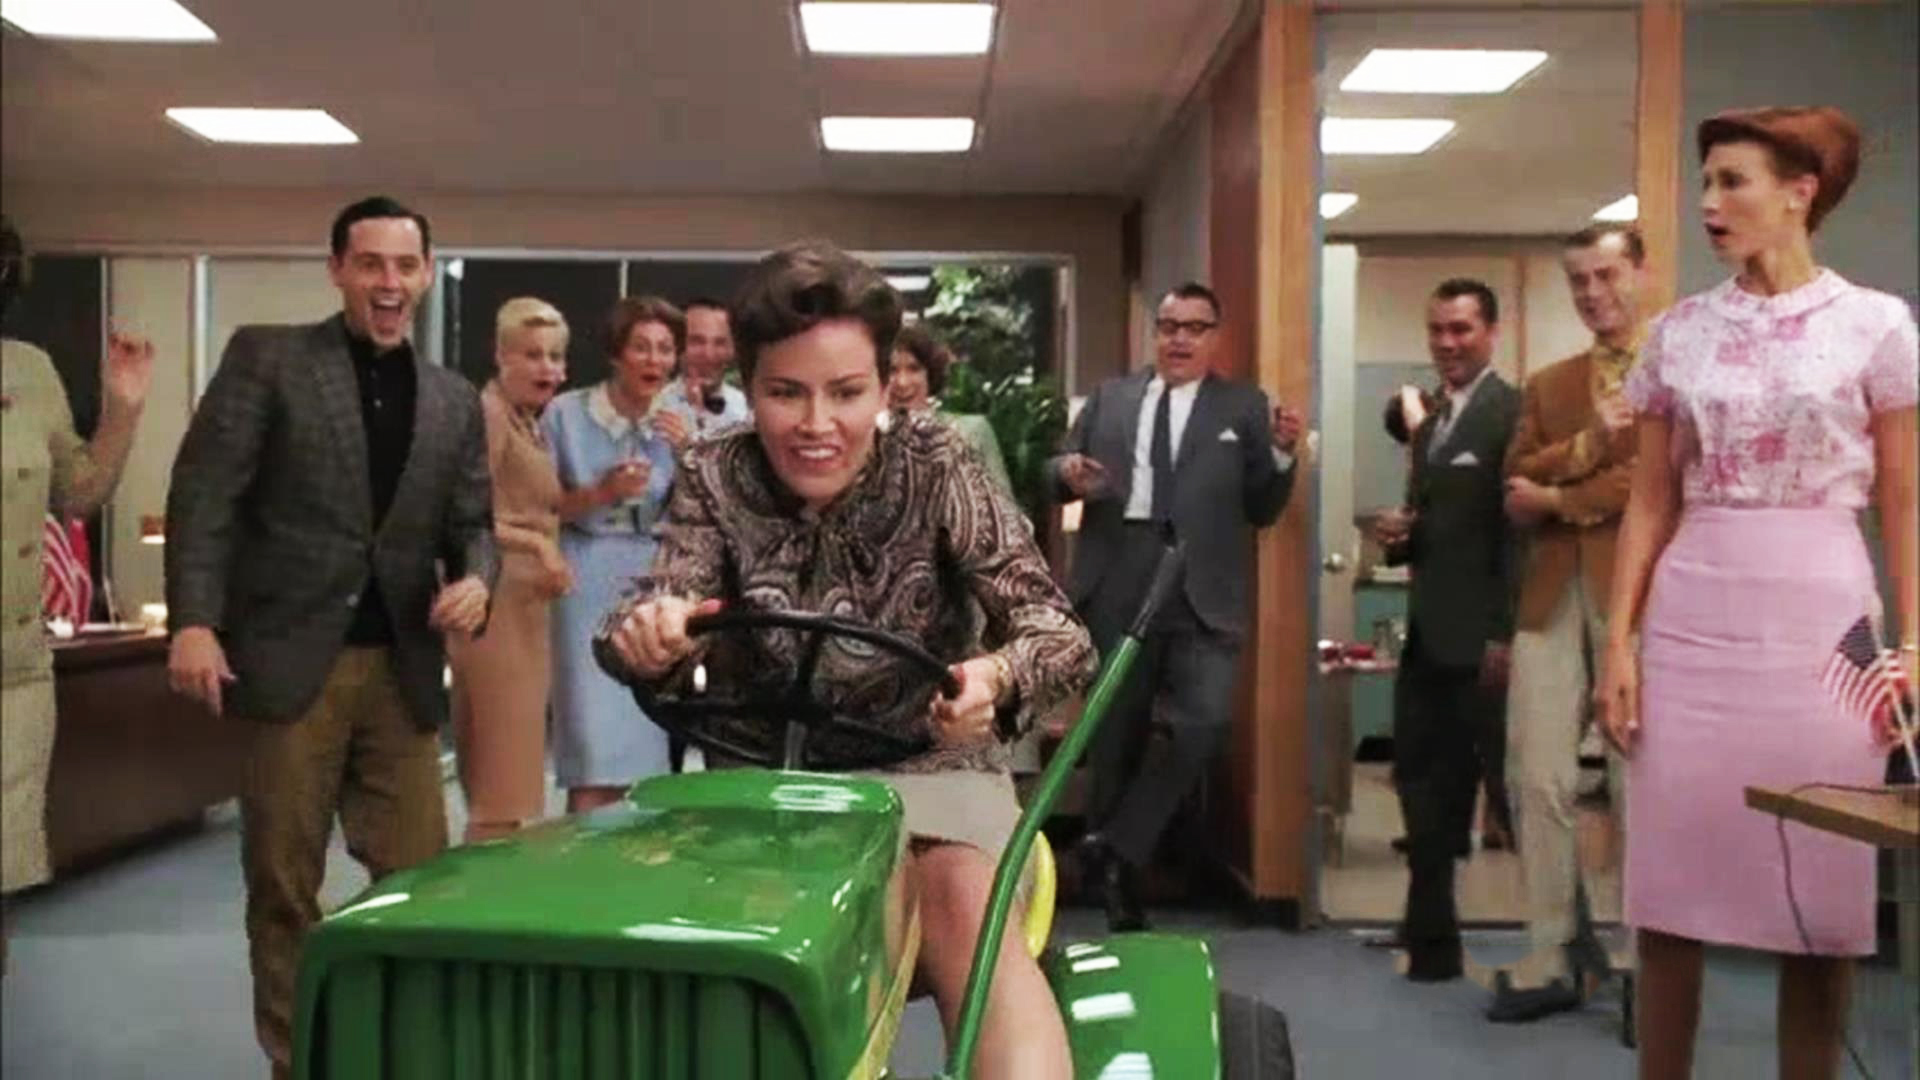 Mad Men Office video extra - mad men - talked about scene episode 306 mad men